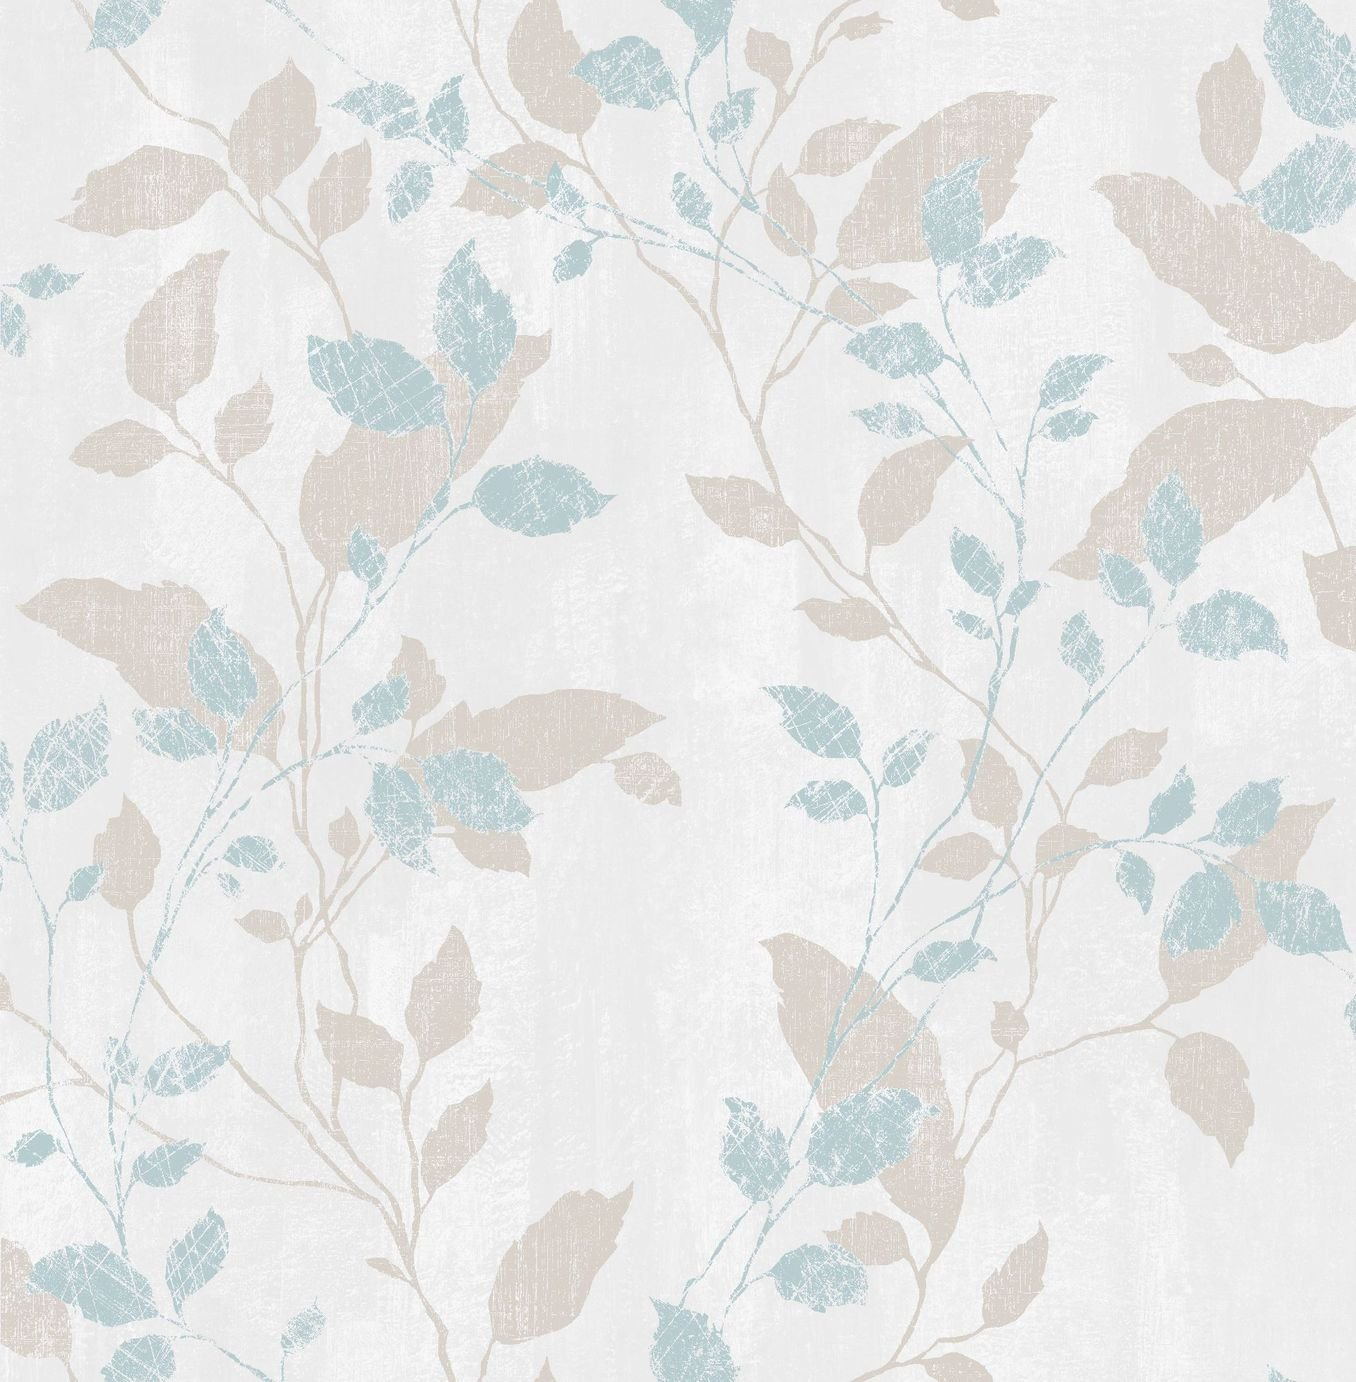 Image of Graham & Brown Boutique Vermeil Leaf Wallpaper Duck Egg